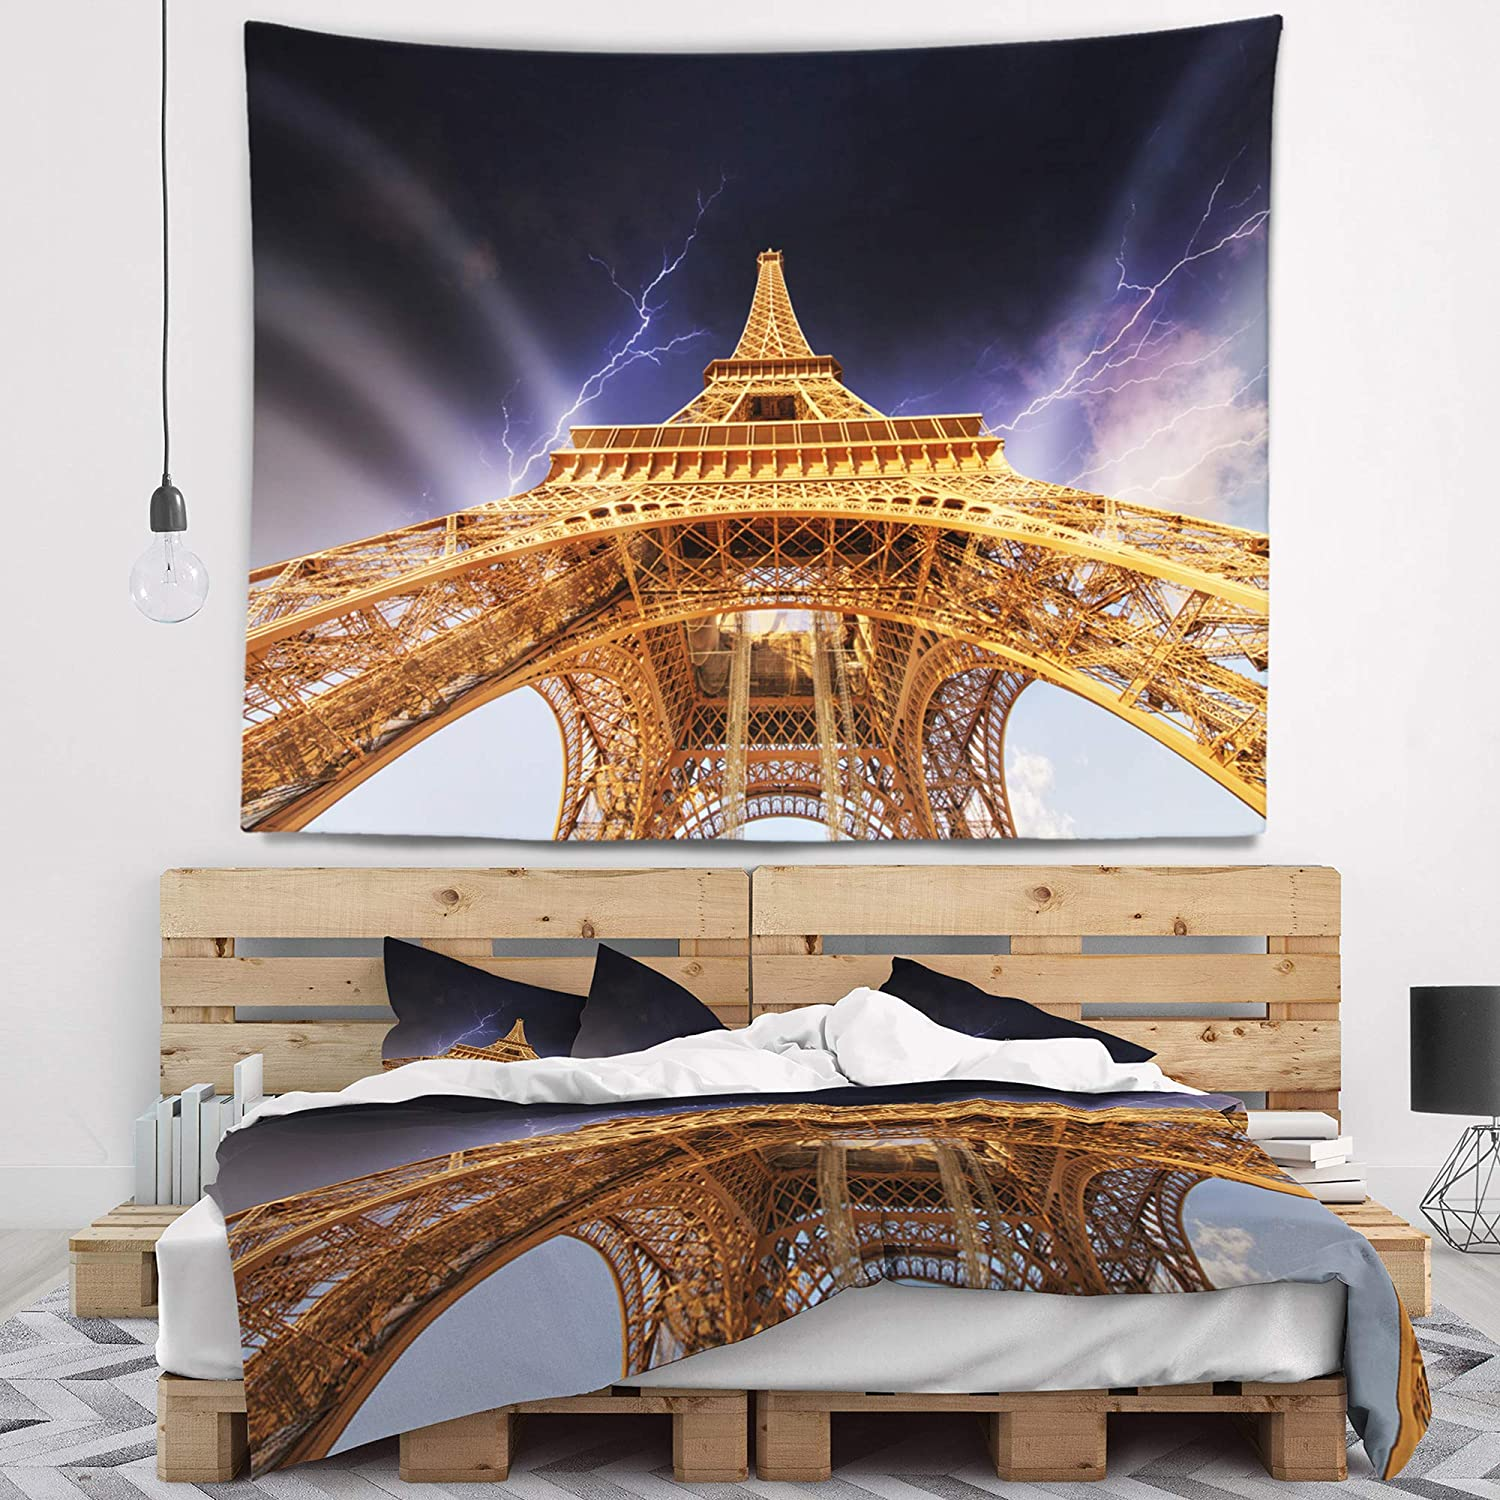 Designart Tap10133 39 32 Storm Eiffel Towerin Paris Cityscape Blanket Décor Art For Home And Office Wall Tapestry Medium 39 In X 32 In Created On Lightweight Polyester Fabric